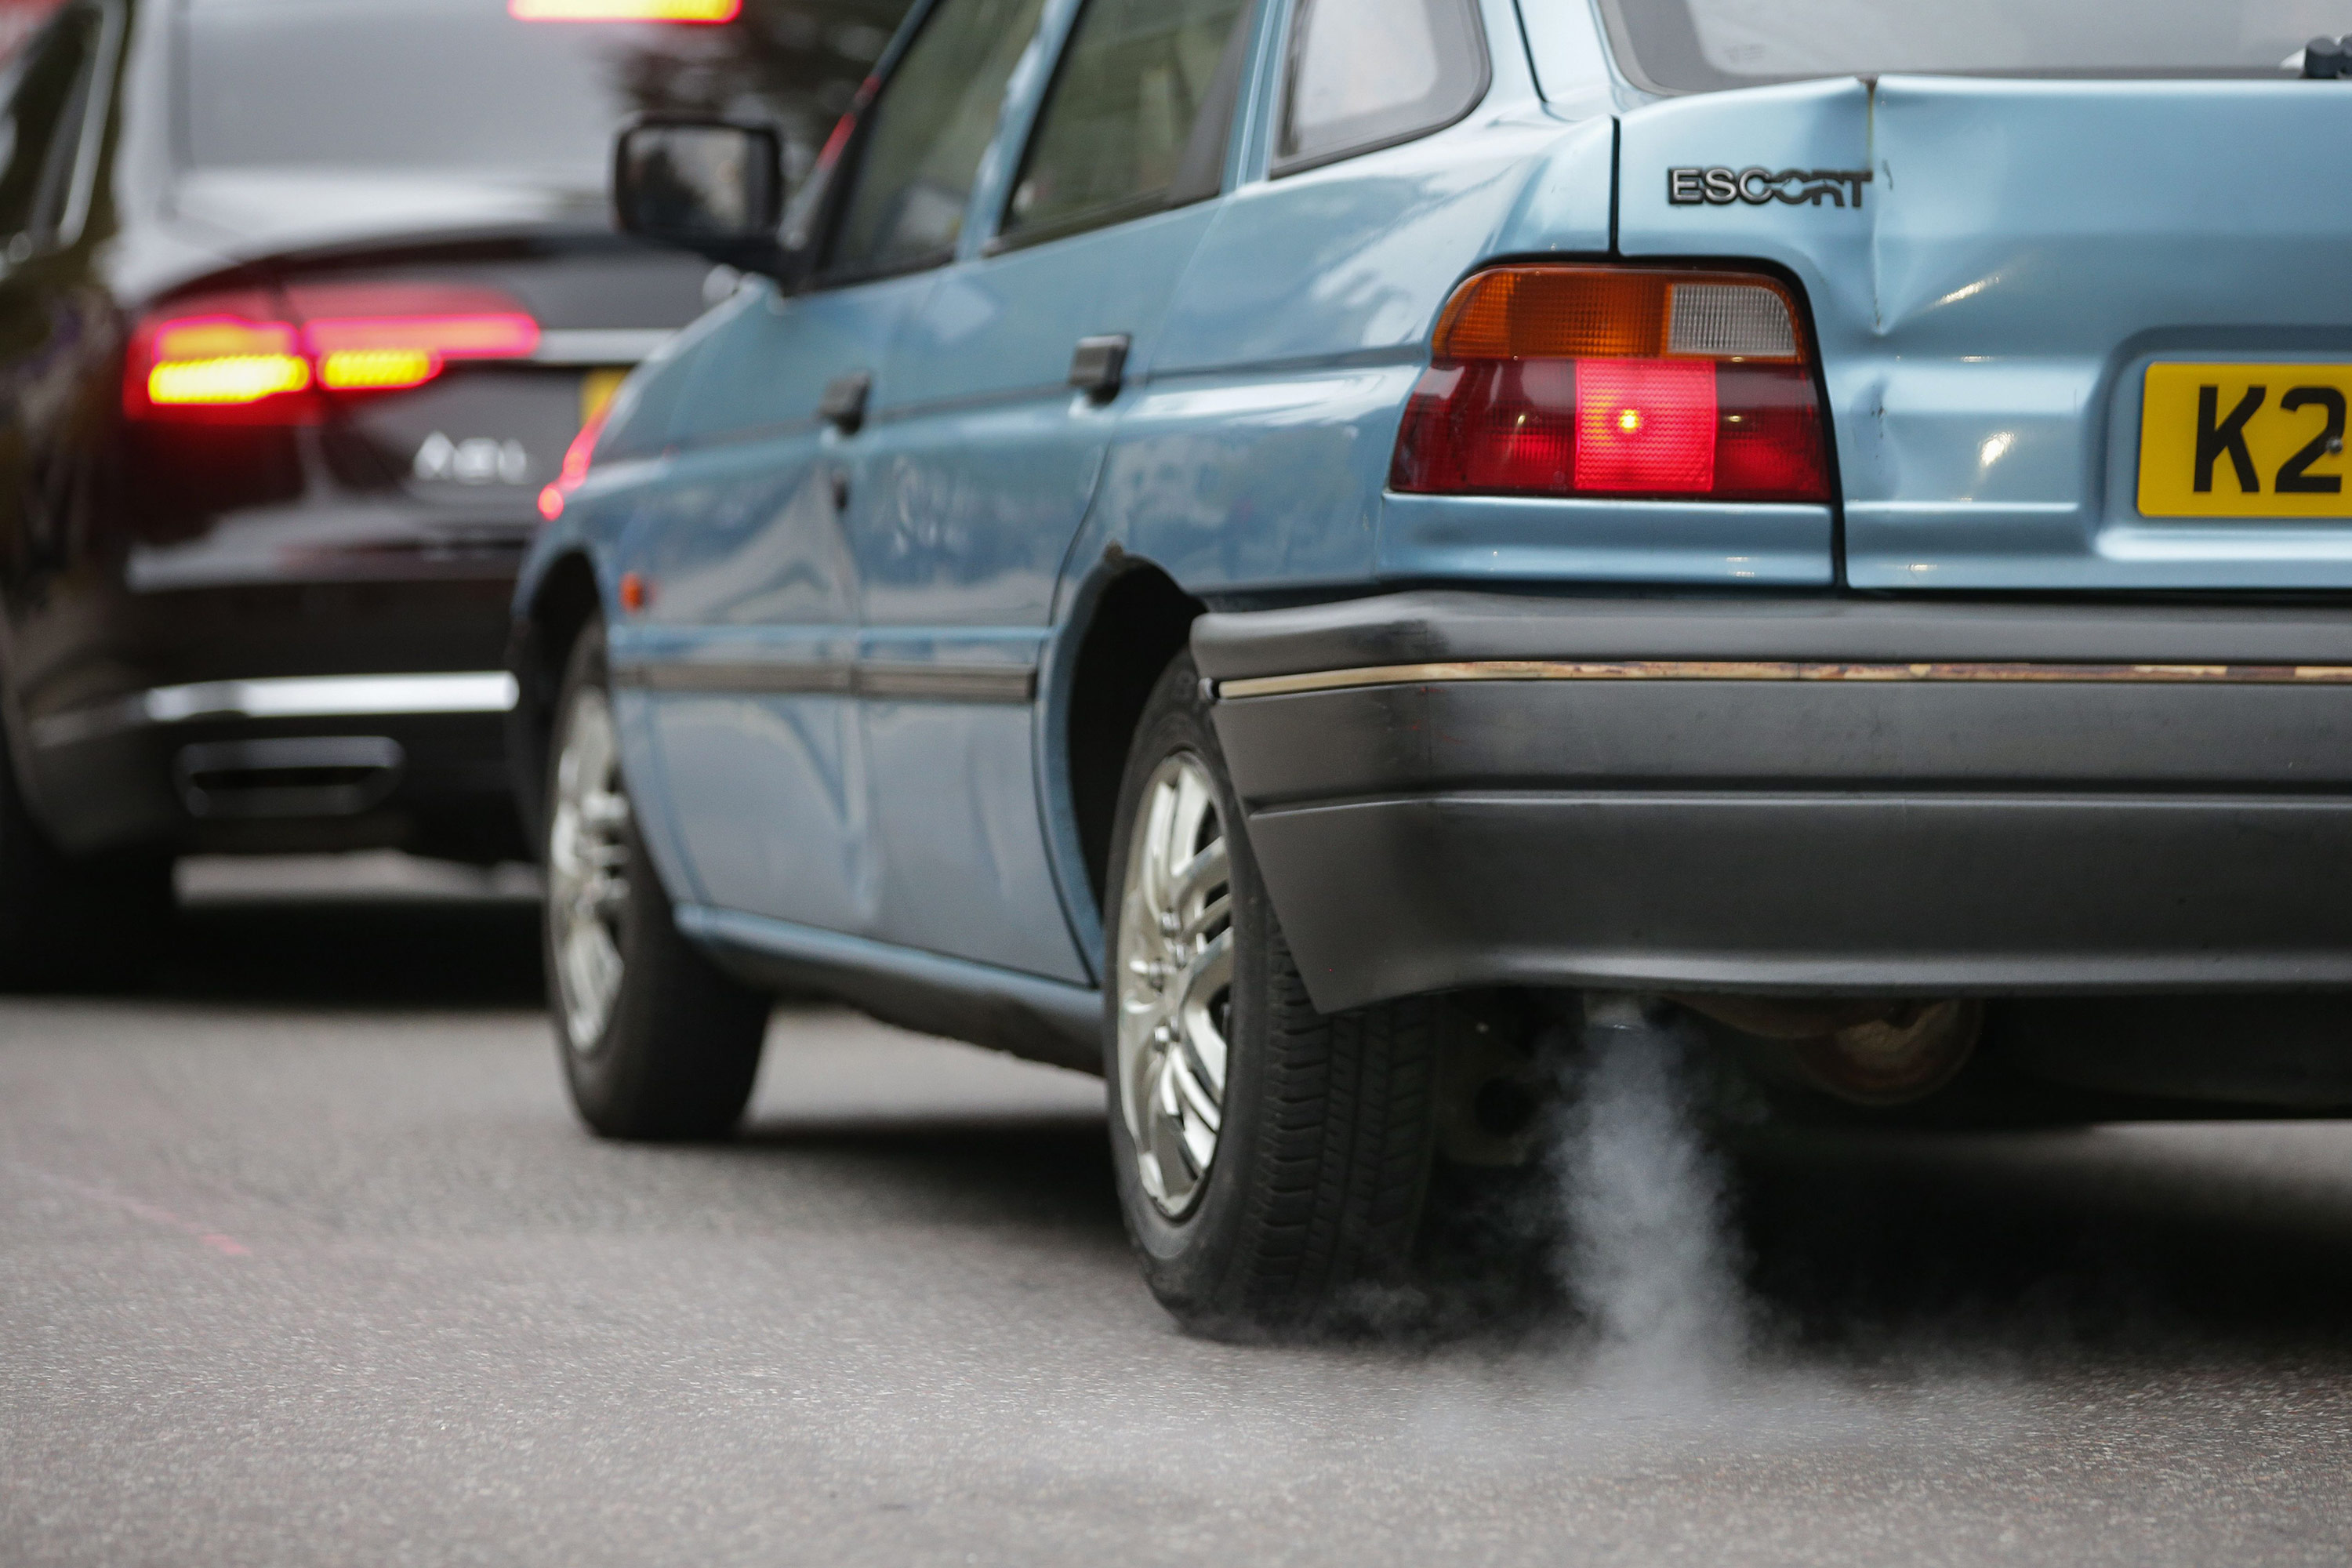 Air pollution is linked to an increased risk of irreversible sight loss, study finds